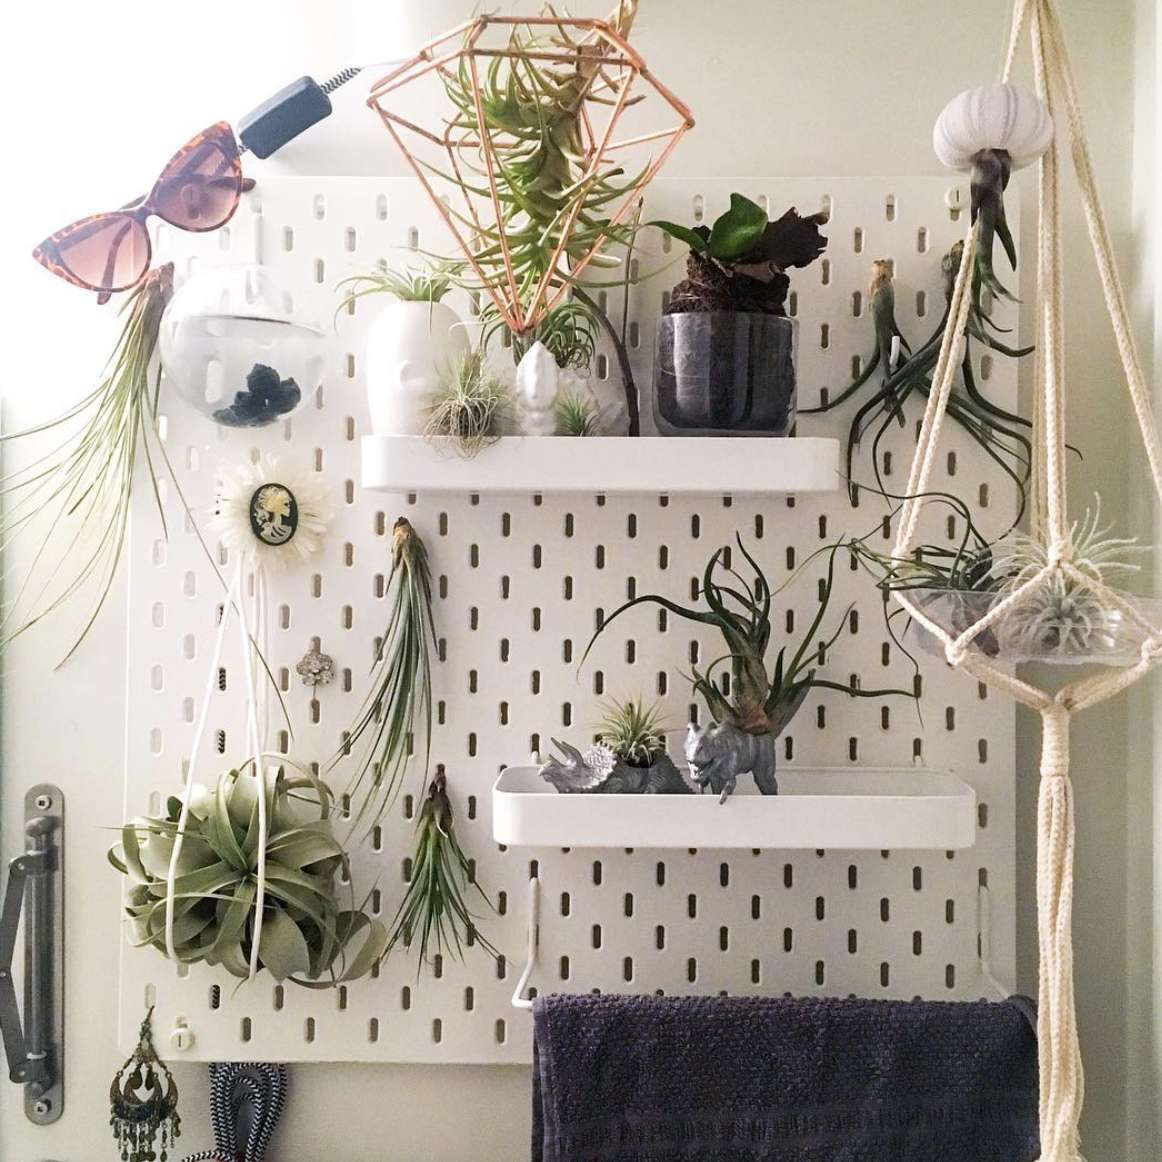 pegboard with plants attached to it